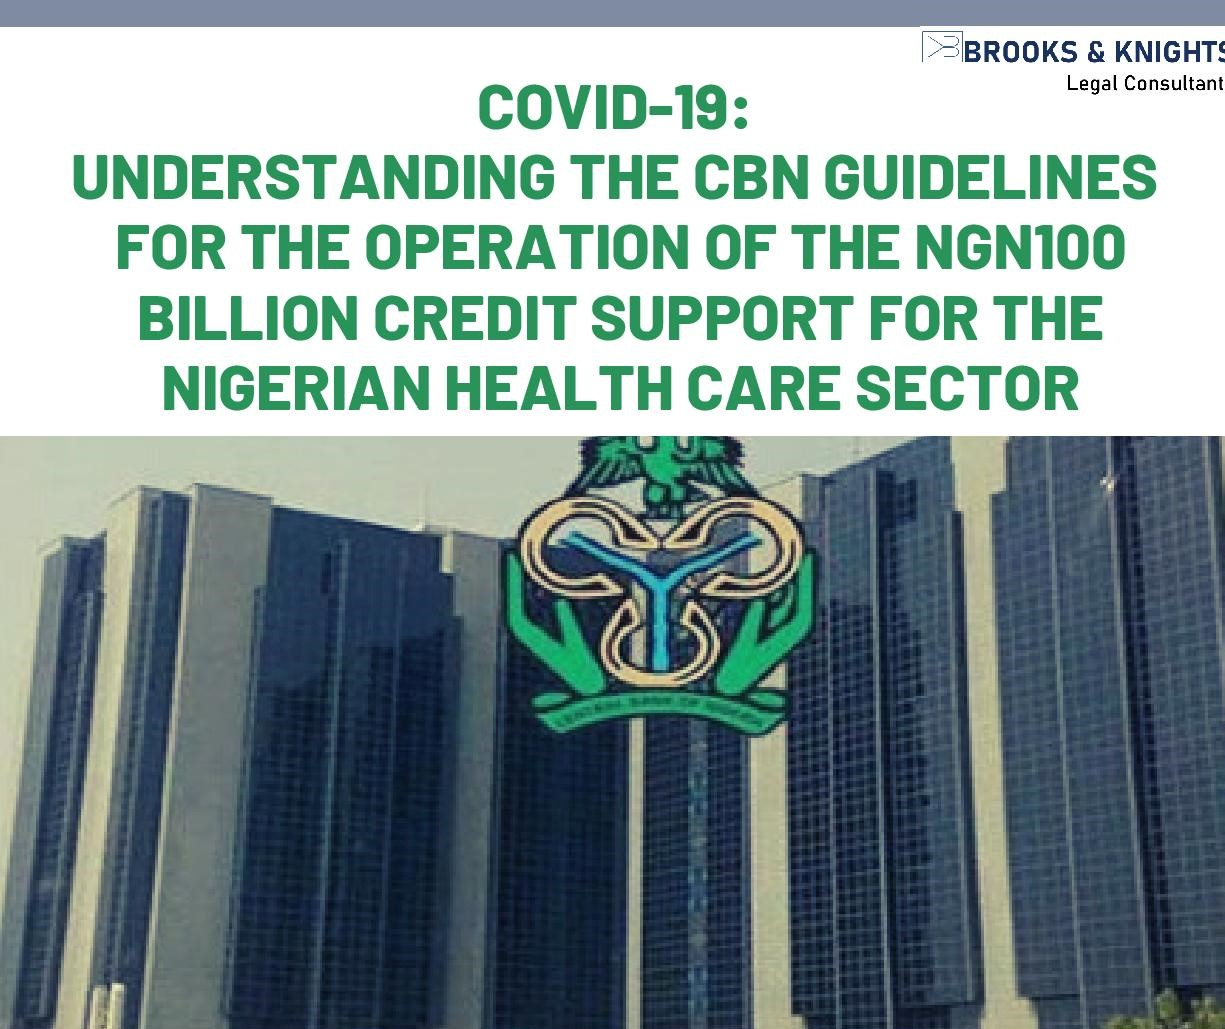 COVID-19: Understanding the CBN Guidelines For the Operation of the NGN100 Billion Credit Support for the Nigerian Healthcare Sector